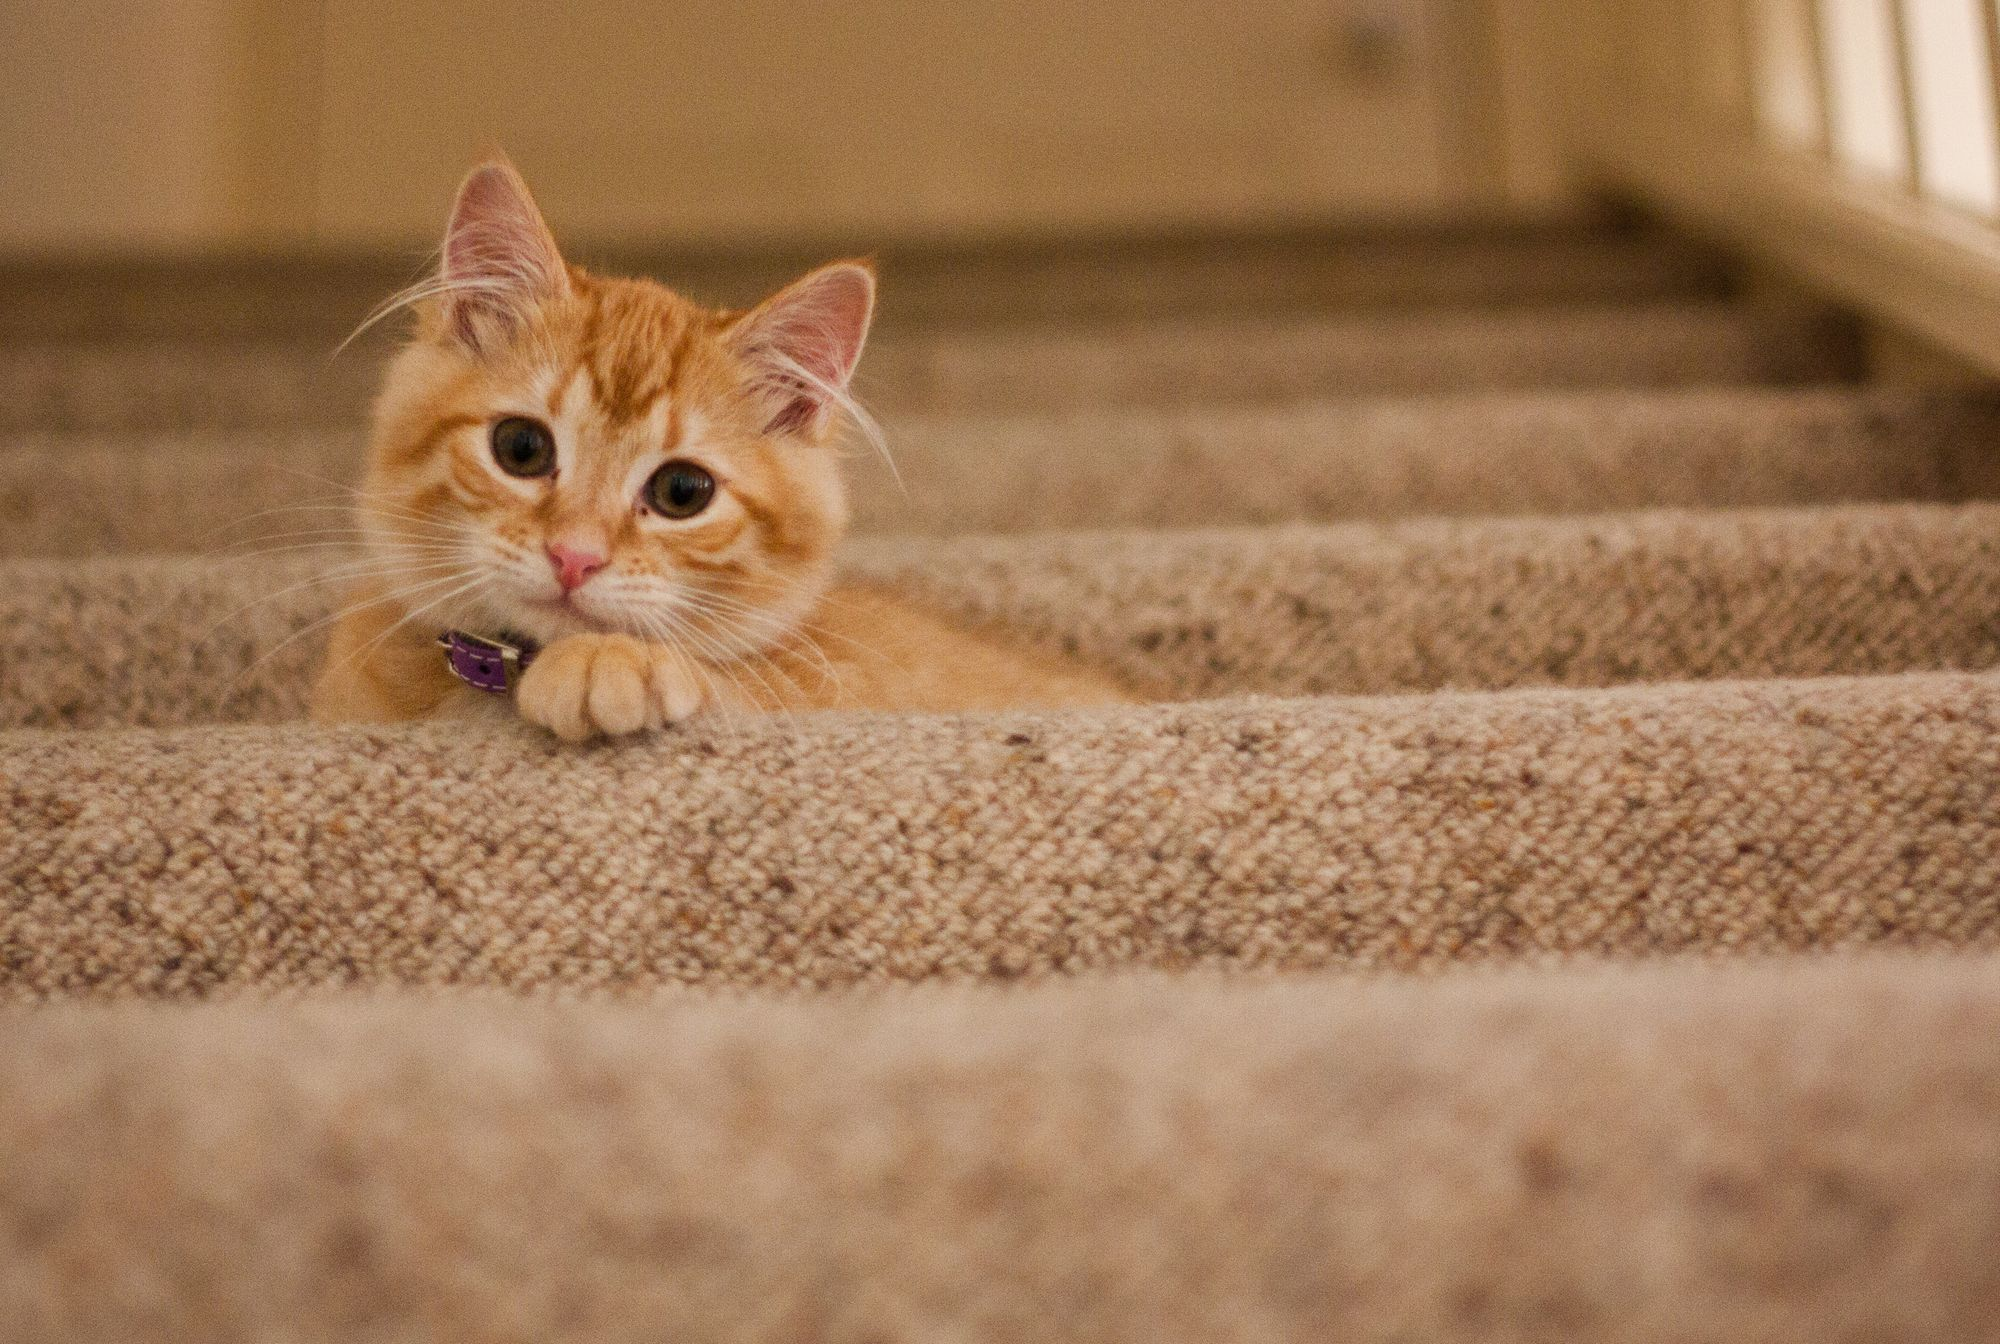 Pet-Friendly Renting: Why Landlords Should Consider All Creatures (Moderately) Great and Small